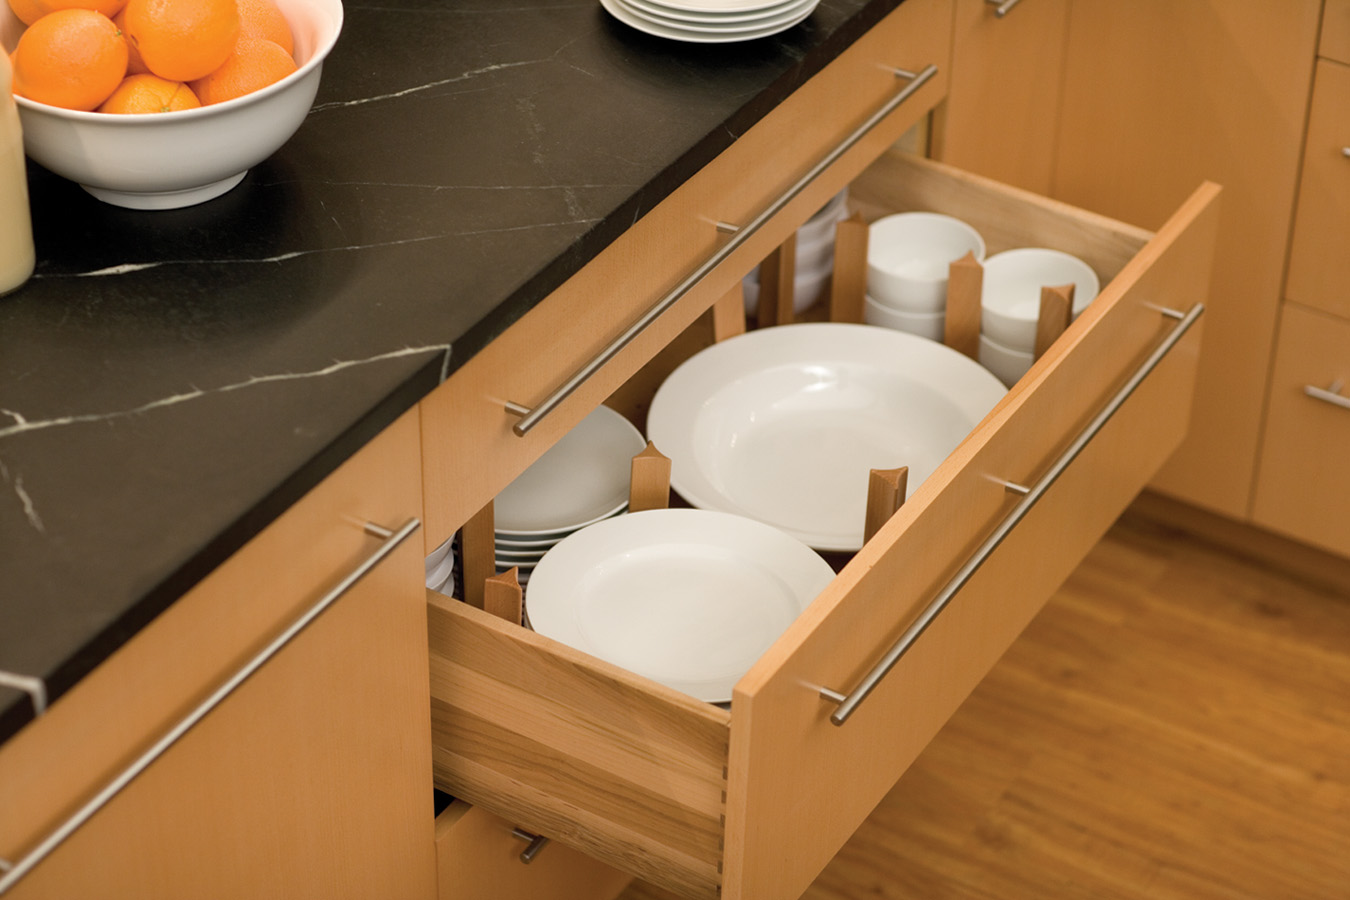 You are currently viewing Built-In Organization for Kitchens: 6 Cabinet & Drawer Options We Recommend